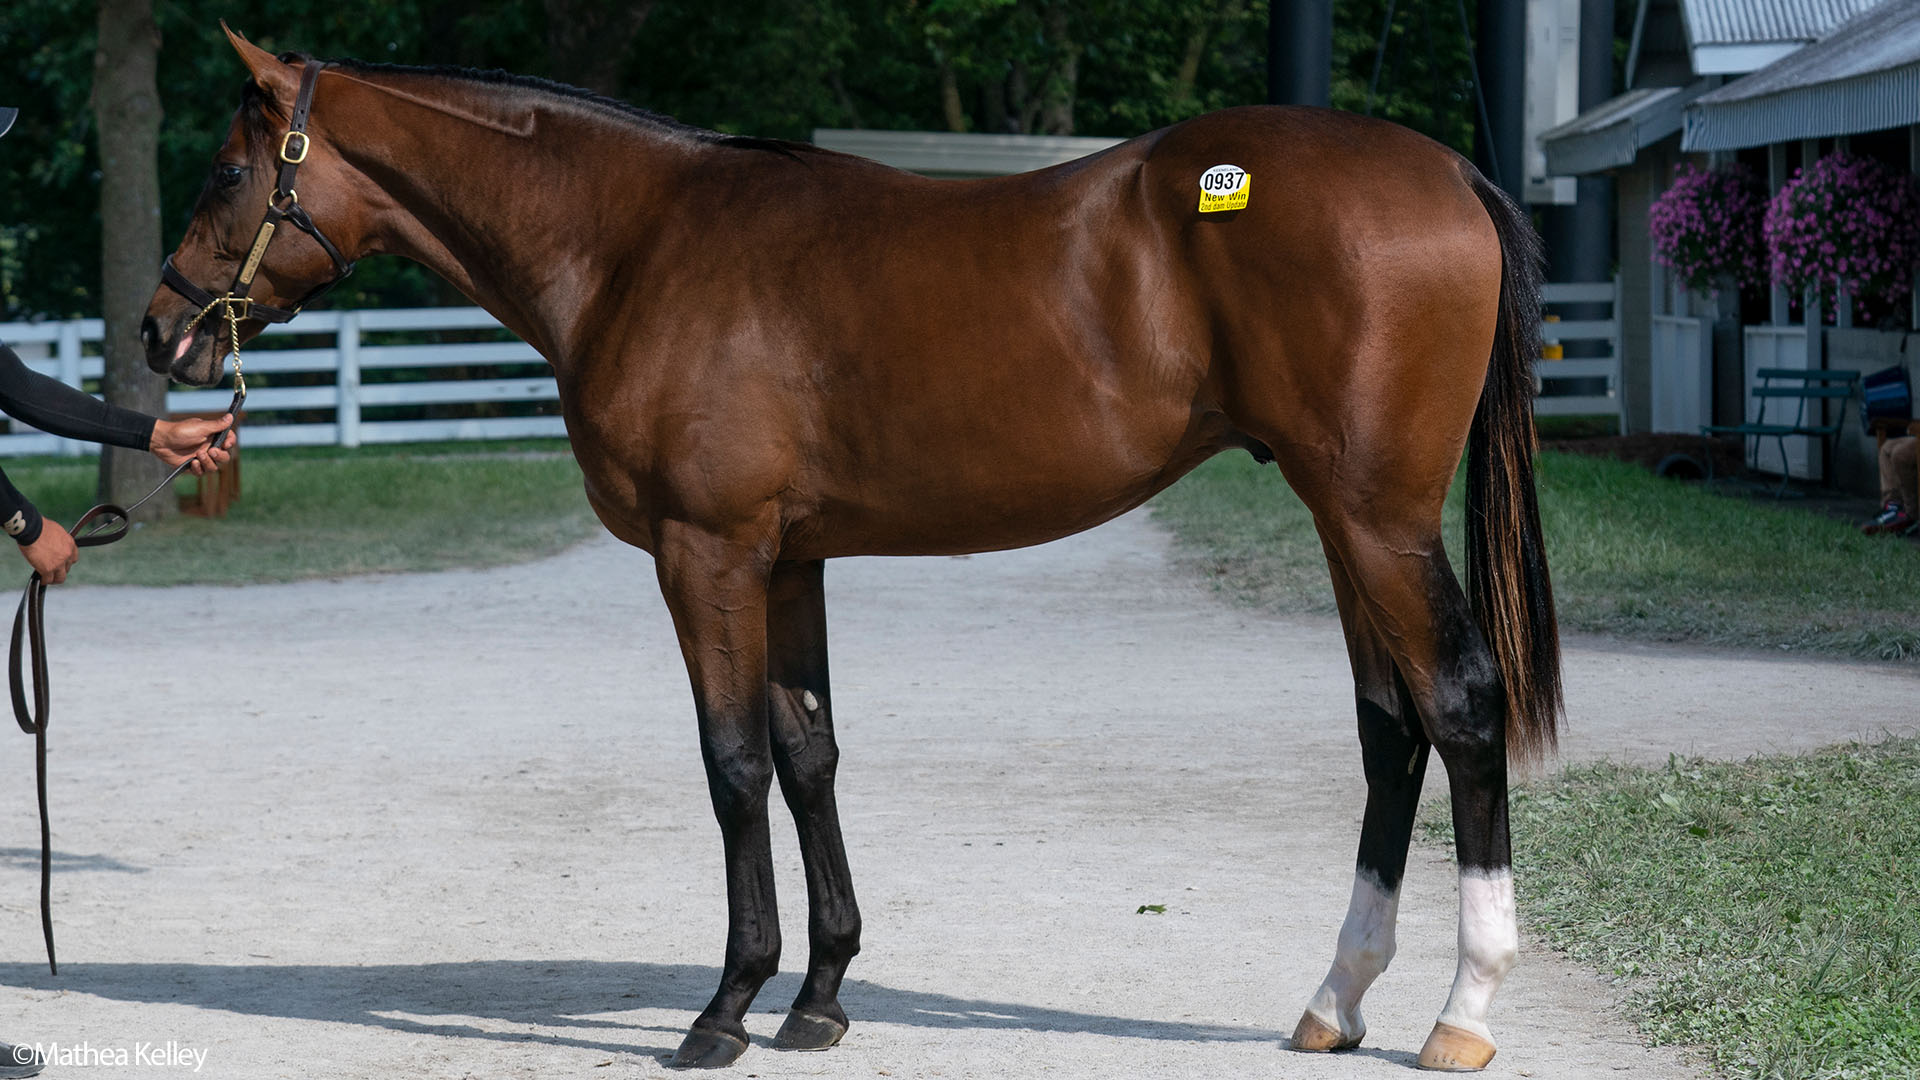 Candy Ride colt out of the Tiznow mare Well Lived, purchased at the Keeneland September Sale and available in the Elmont thoroughbred racing partnership.